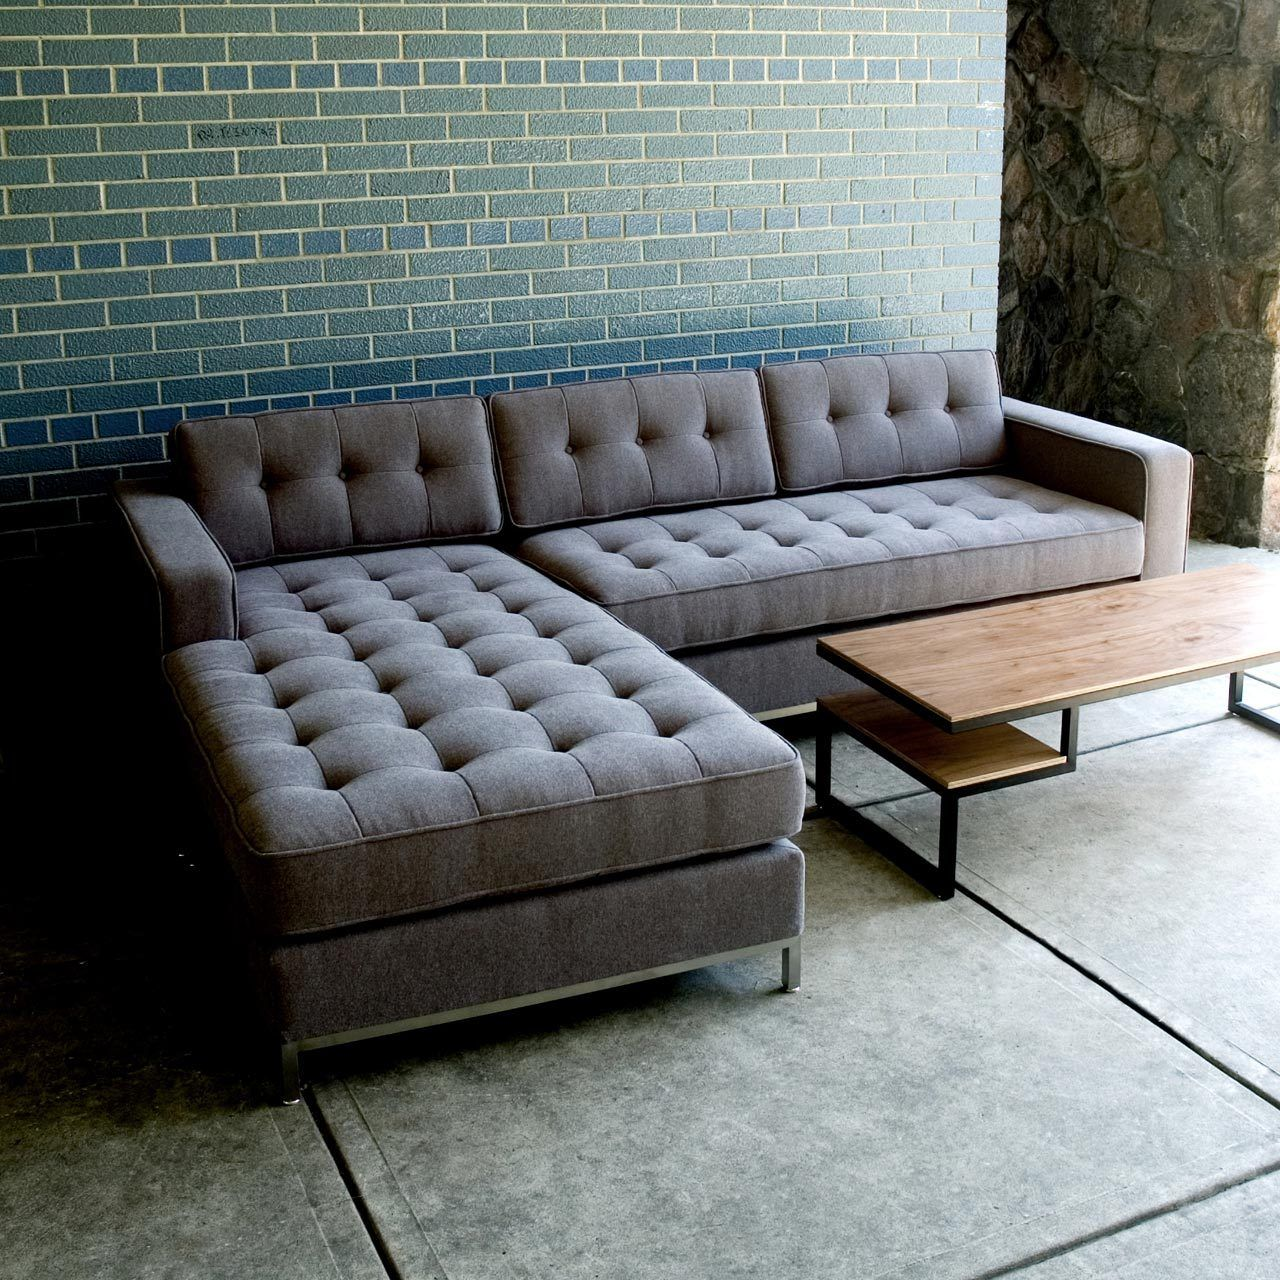 fantastic tufted sofa sectional inspiration-Beautiful Tufted sofa Sectional Model